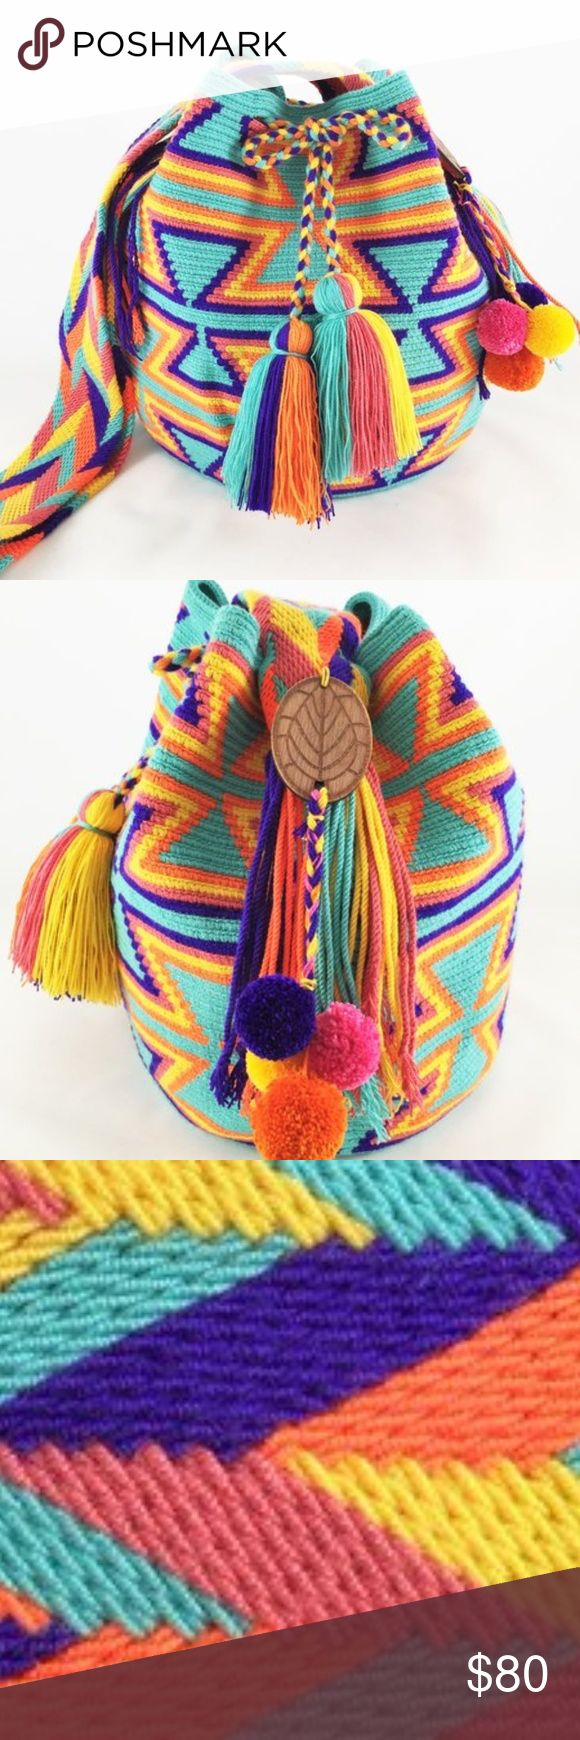 ETHNIC MULTI COLORED WAYUU BAG -AZTEC 1 This beautiful one of a kind bag is handmade by women of the Wayuu Tribe in Colombia. Wayuu Mochilas are made using hand weaving techniques that make sizes, patterns, shading and details vary.       Brand: Ecoethnic Ecoethnic Bags Shoulder Bags